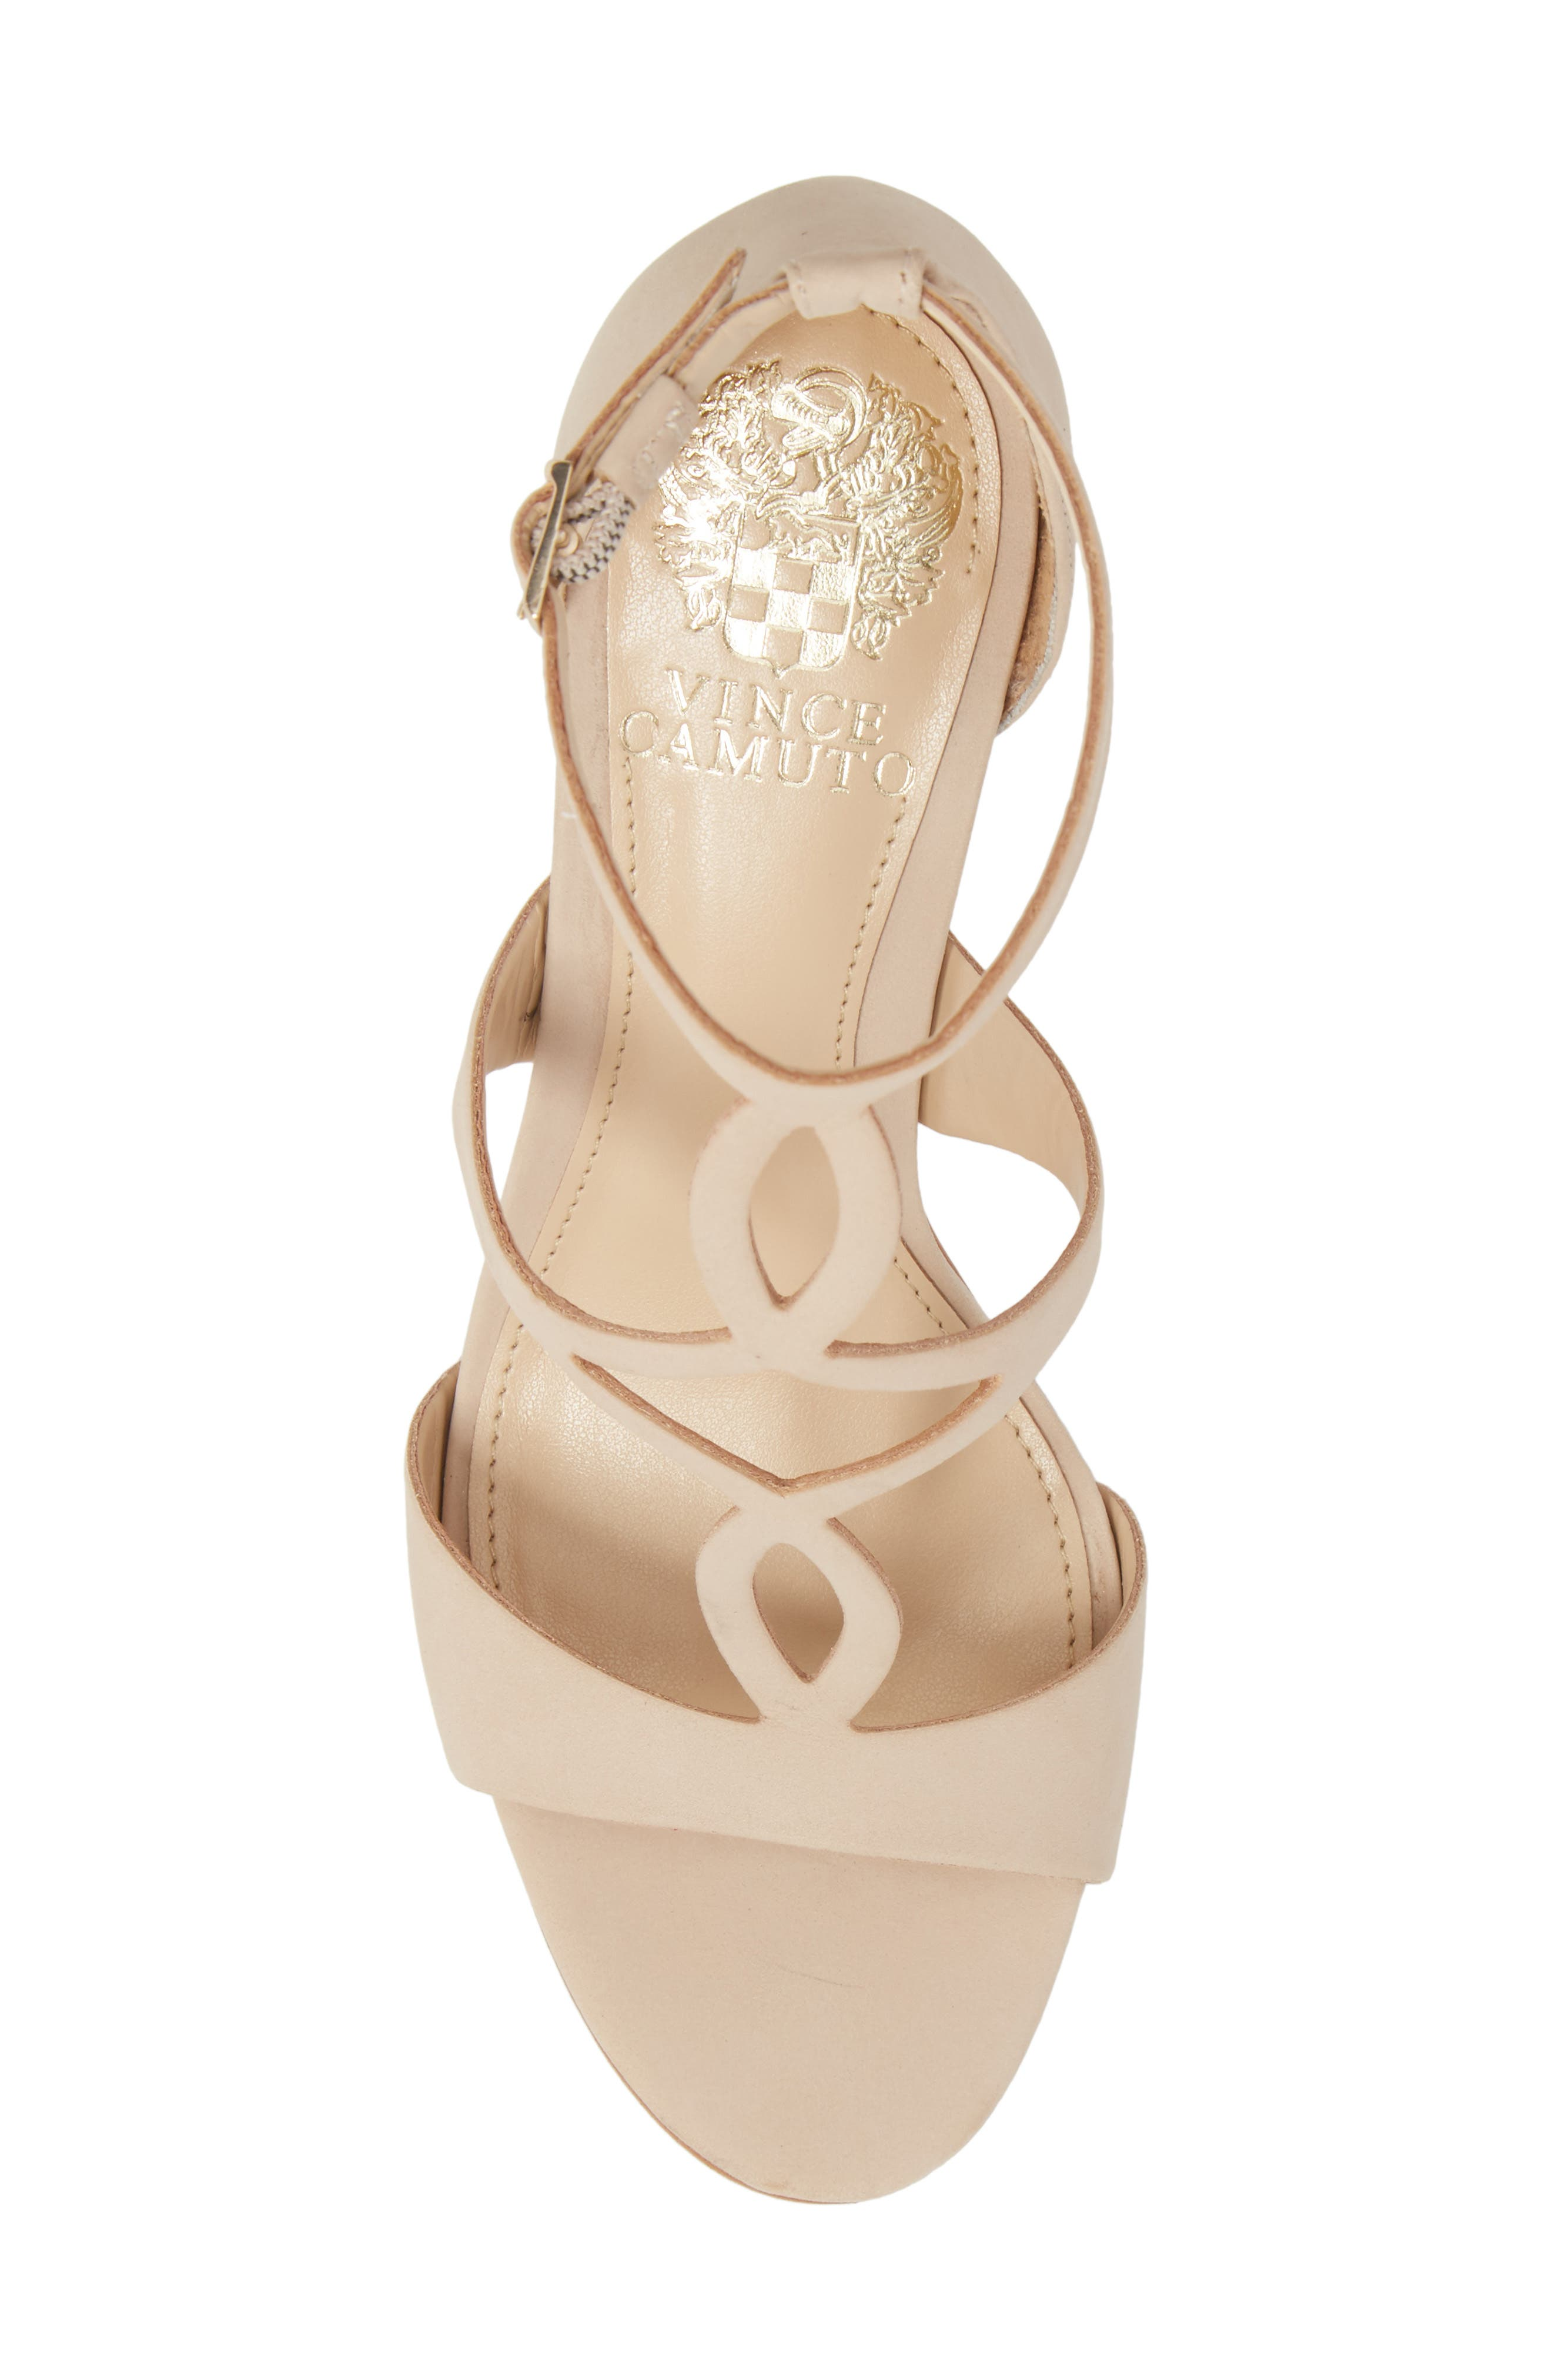 Payto Sandal,                             Alternate thumbnail 5, color,                             NUDE LEATHER